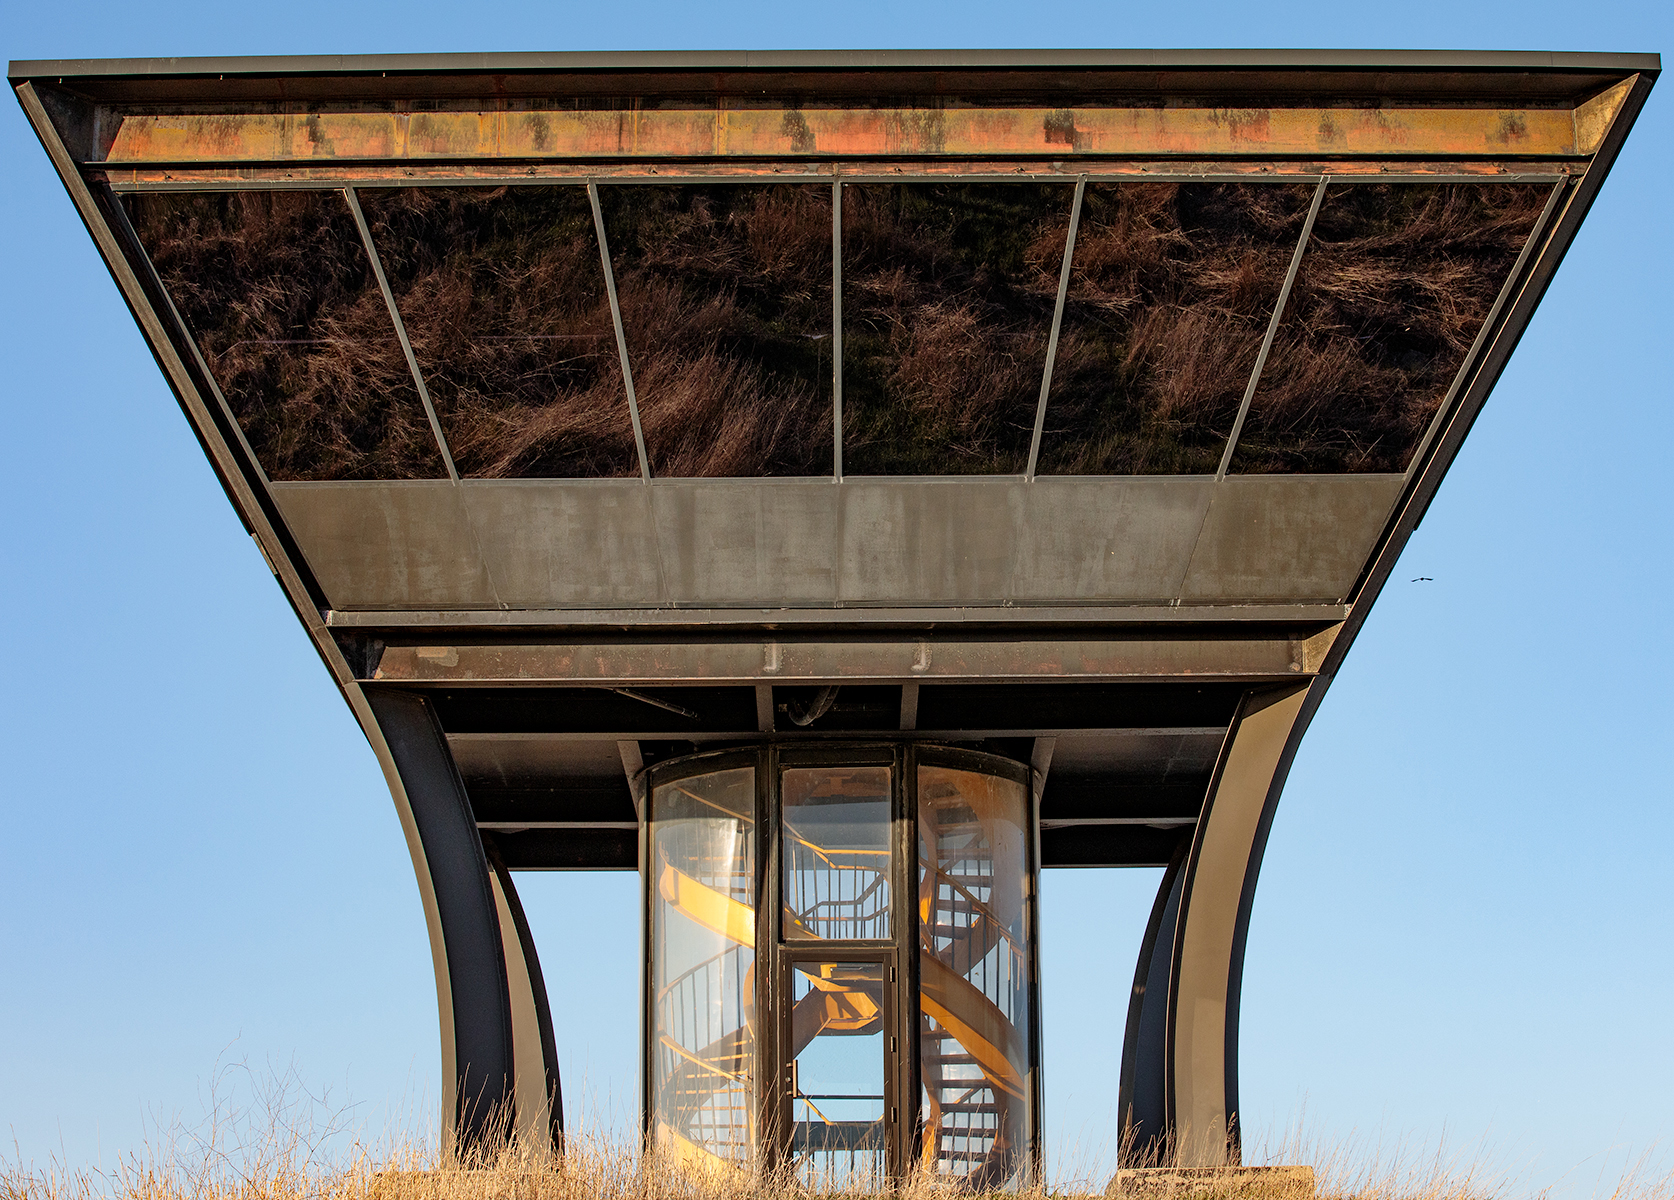 Last month, the photographer captured prairie grass reflected in the Proton Pagoda. Photo: Gene Oleynik, nature, building, prairie, plant, grass, Proton Pagoda